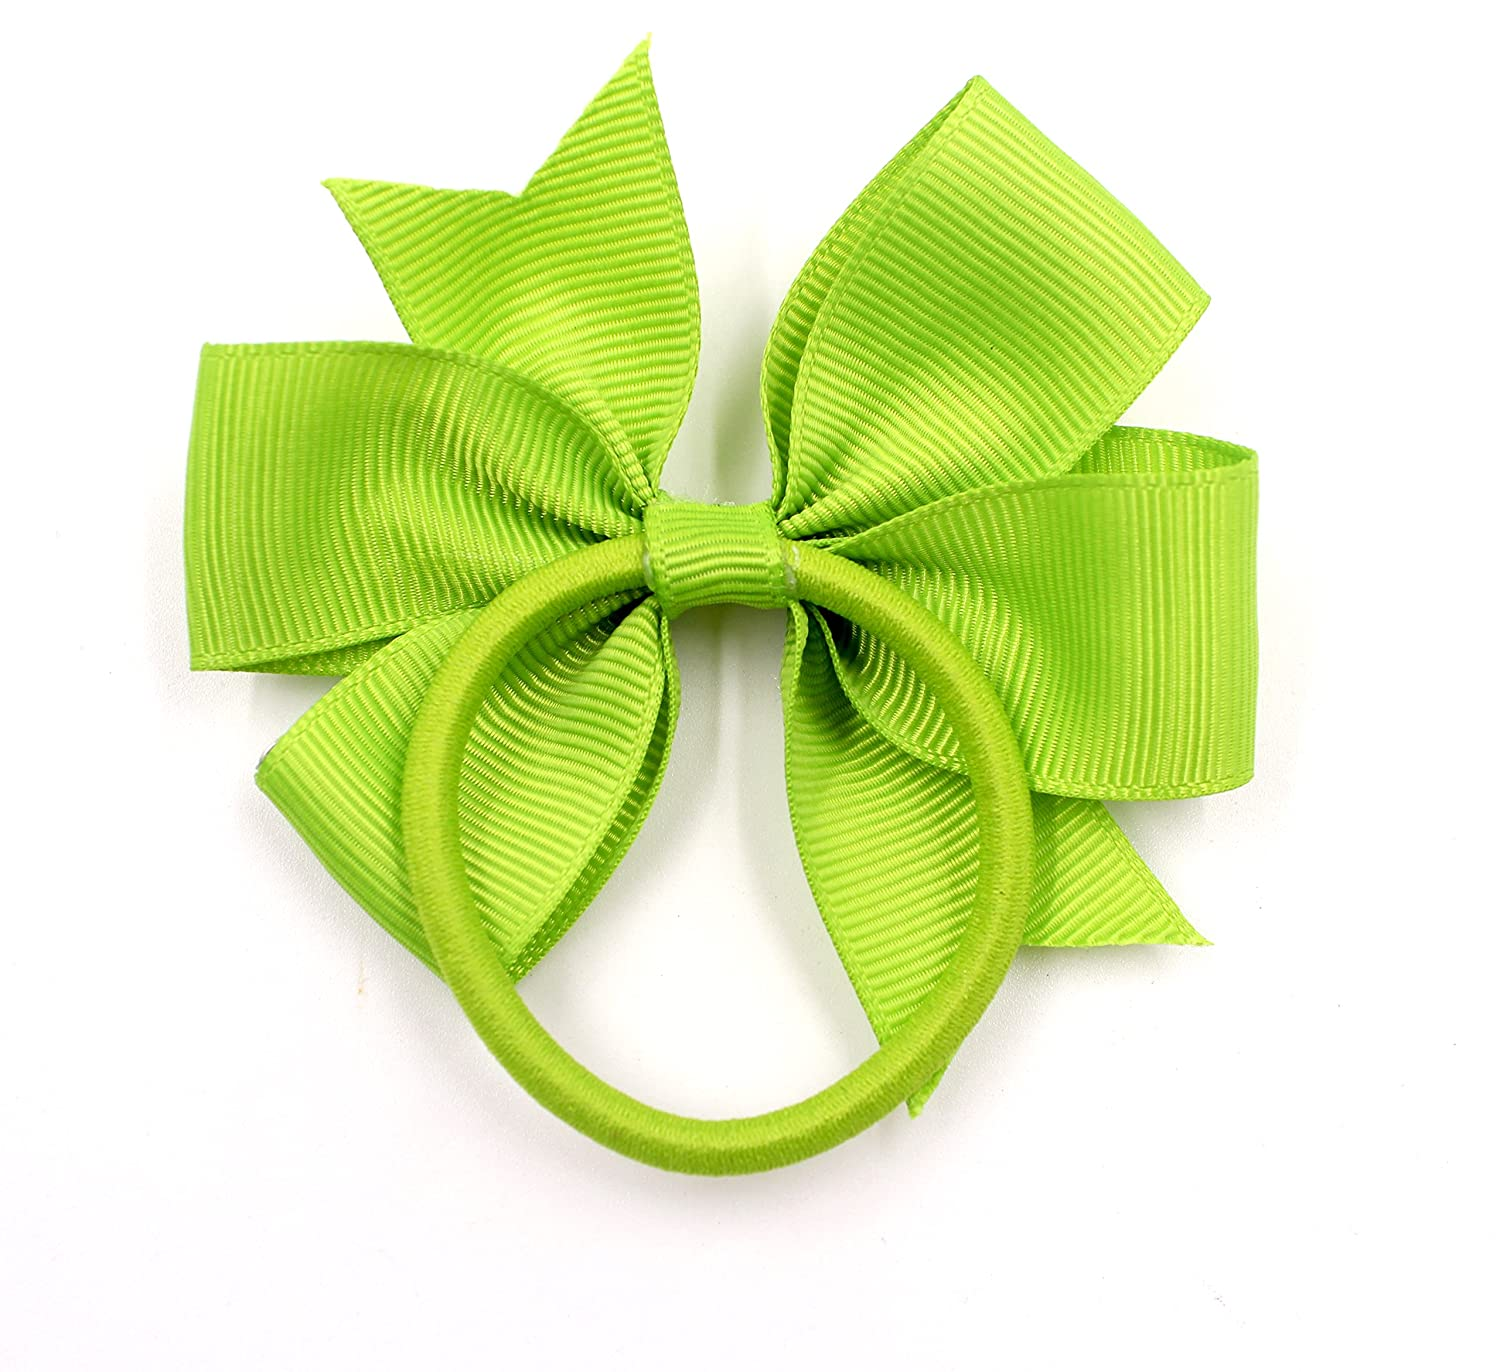 40Pcs 3.5 Boutique Grosgrain Ribbon Hair Bows Elastic Hair Ties Ponytail Holder Hair Bands in Pairs for Girls Kids Children Teens